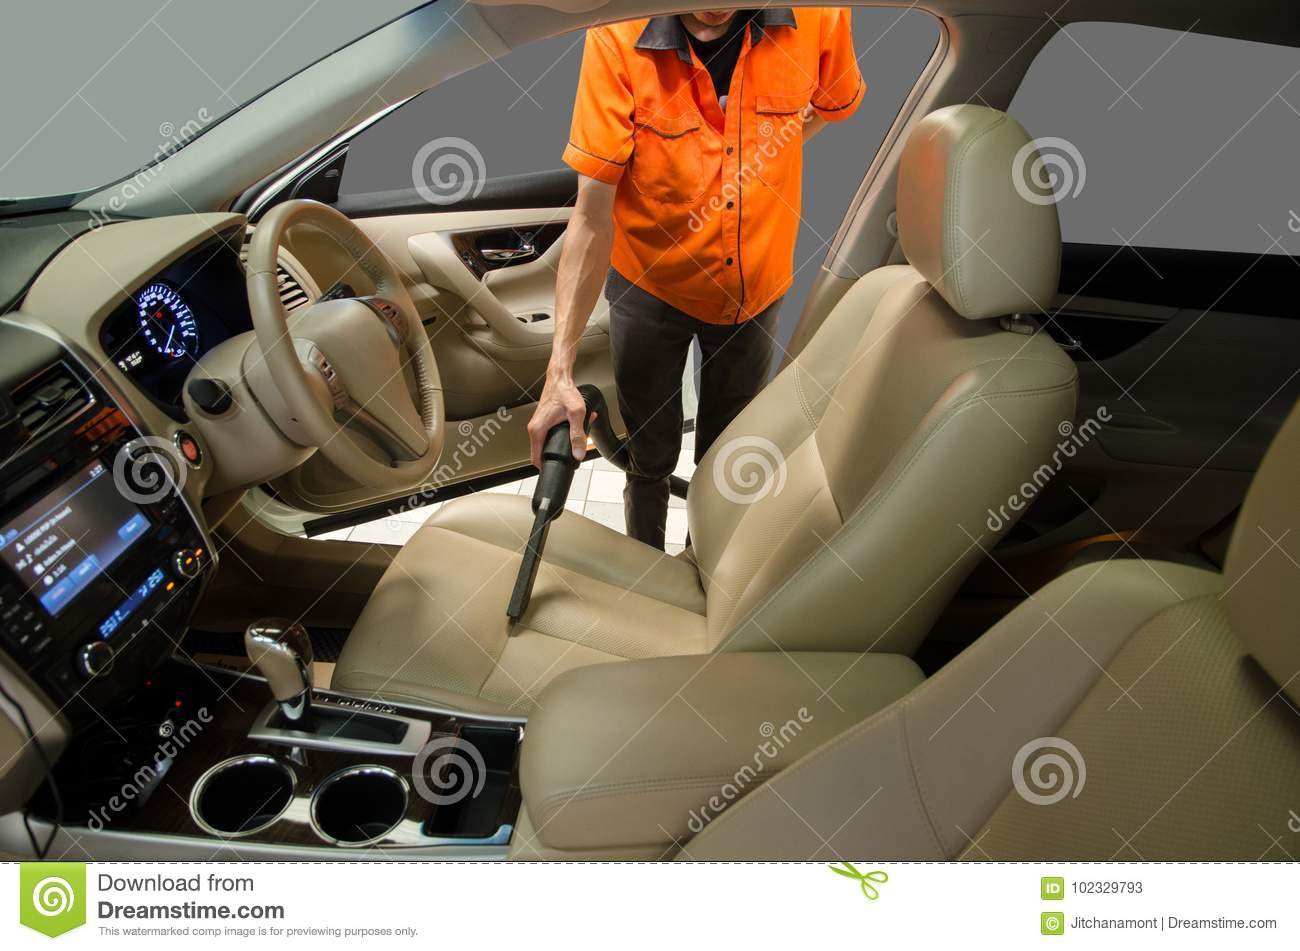 car cleaner upholstery wikihow interior step ways to clean